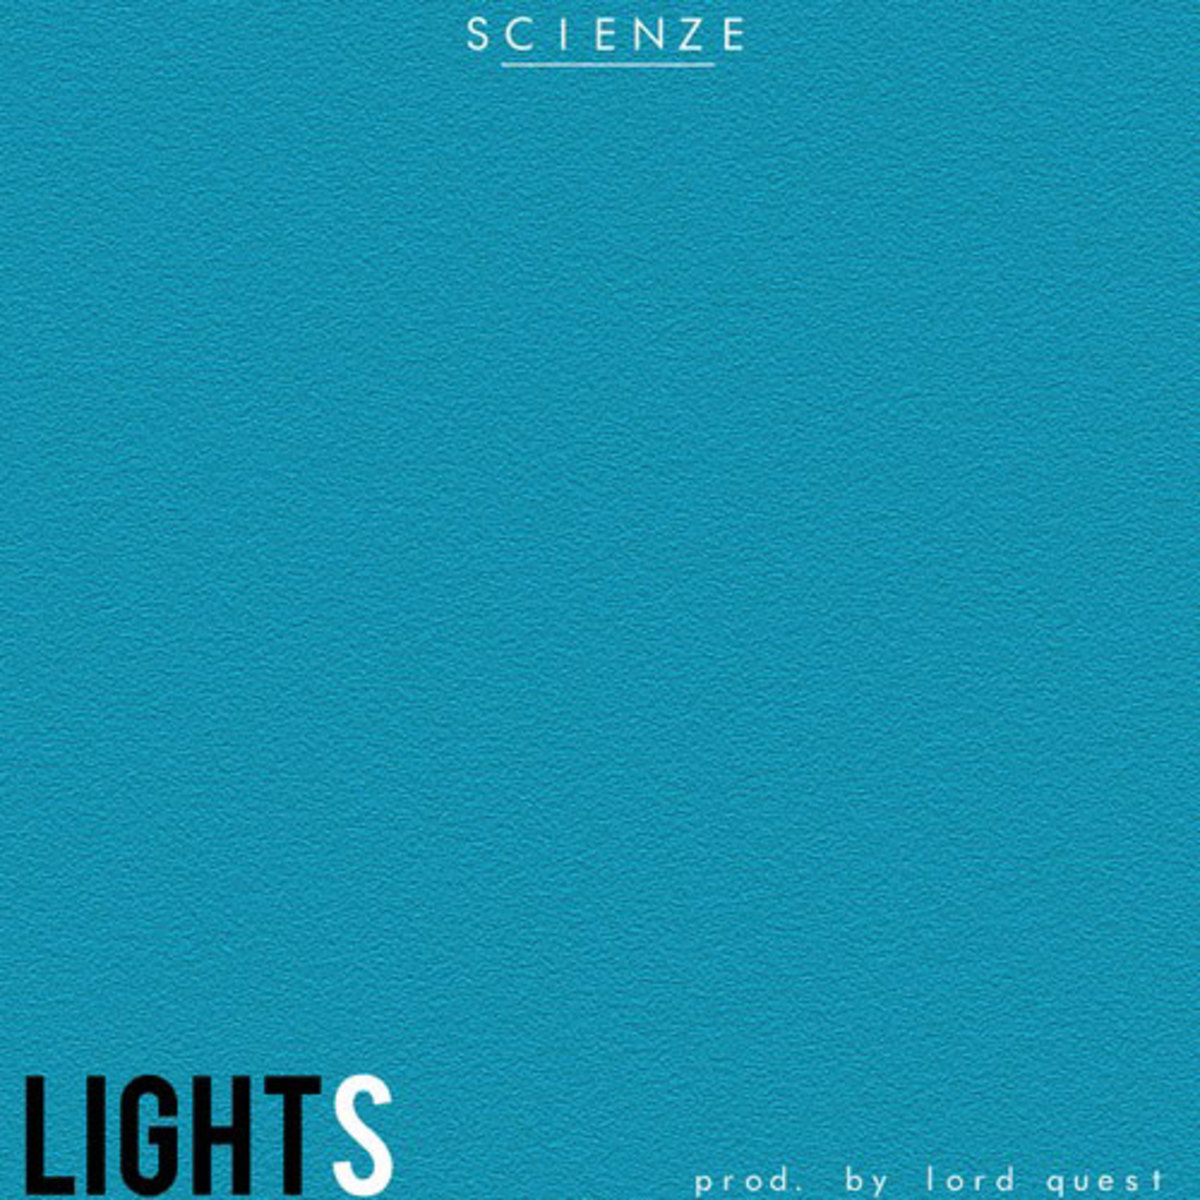 scienze-lights.jpg